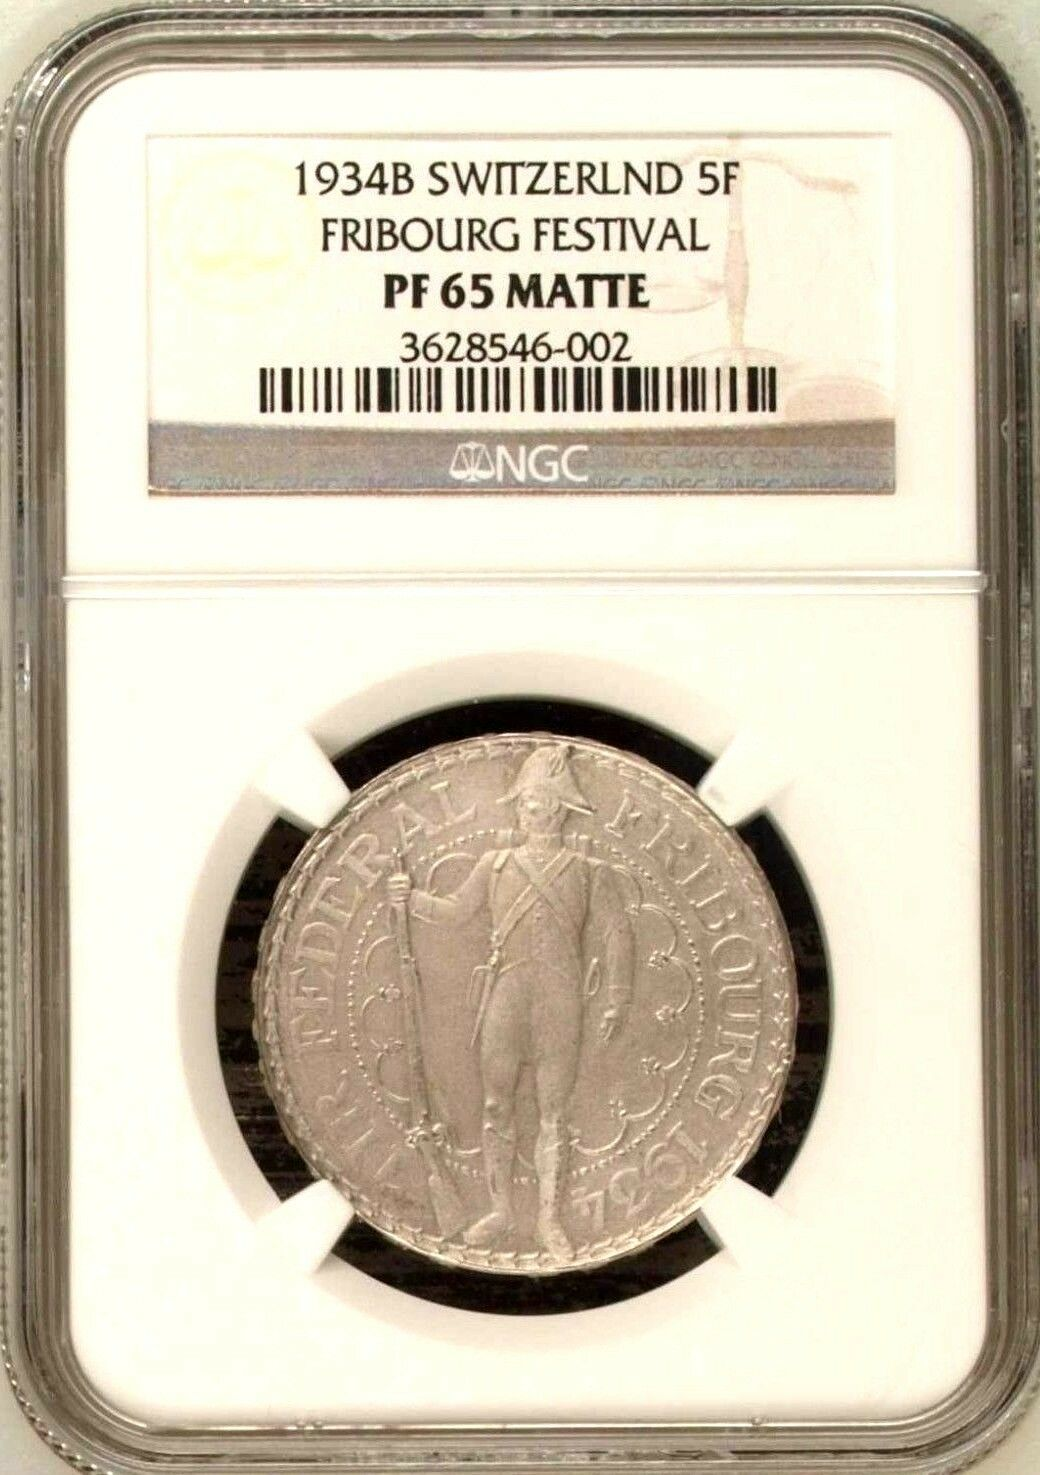 Swiss 1934 Silver Shooting Thaler 5 Francs Fribourg R-431b NGC PF65 Matte Rare